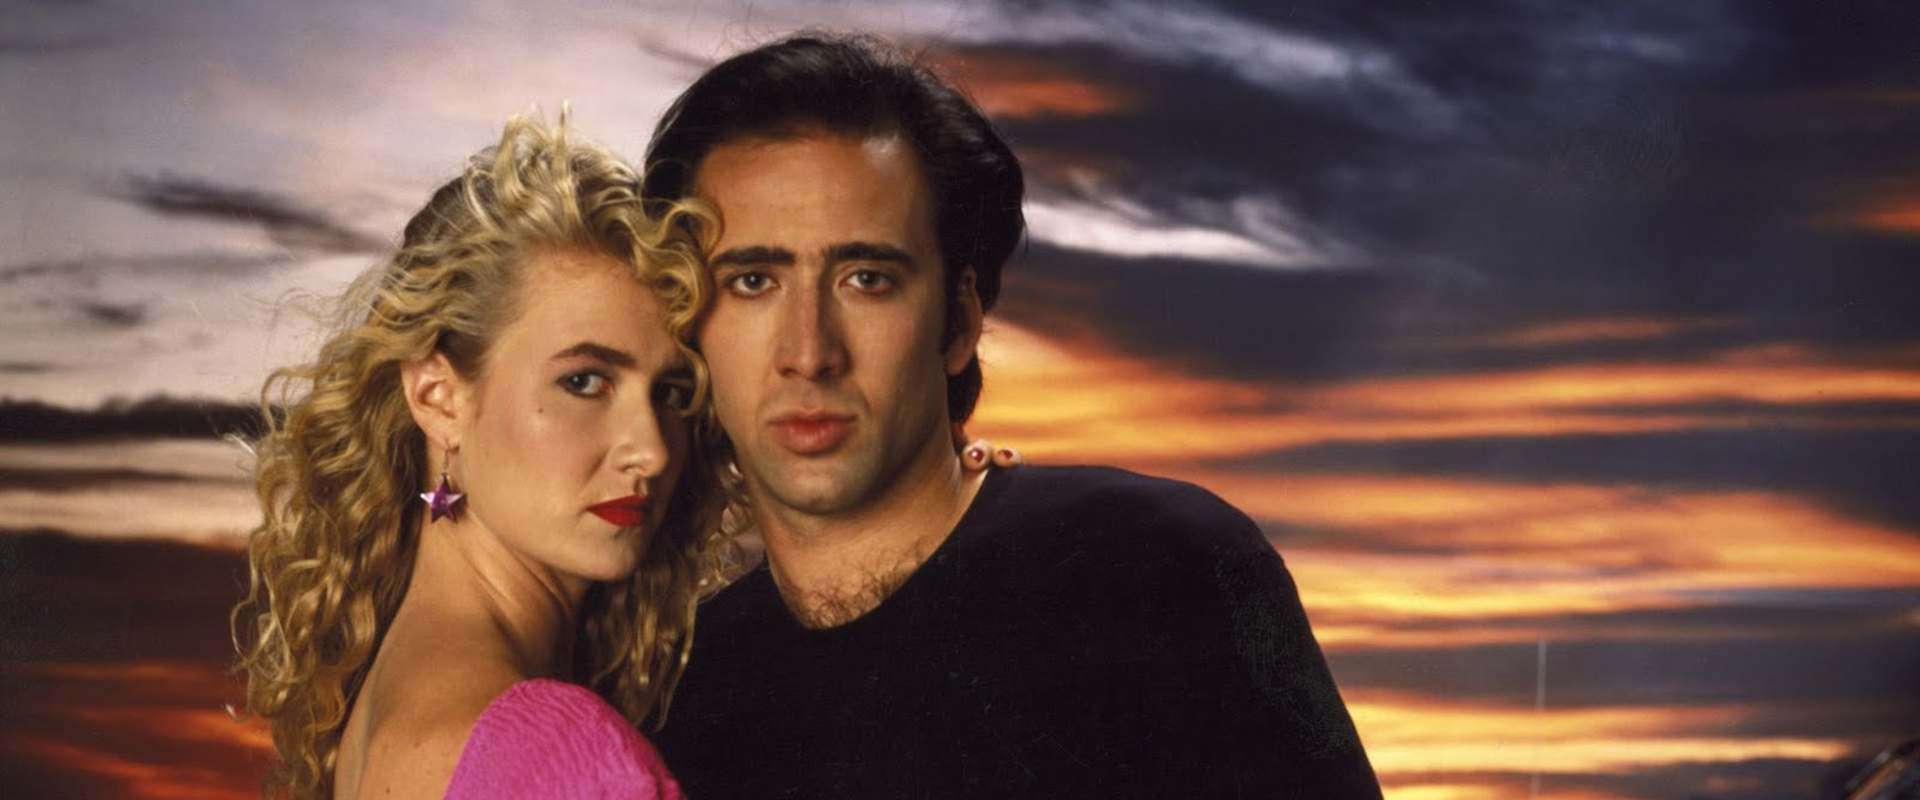 Wild at Heart background 2